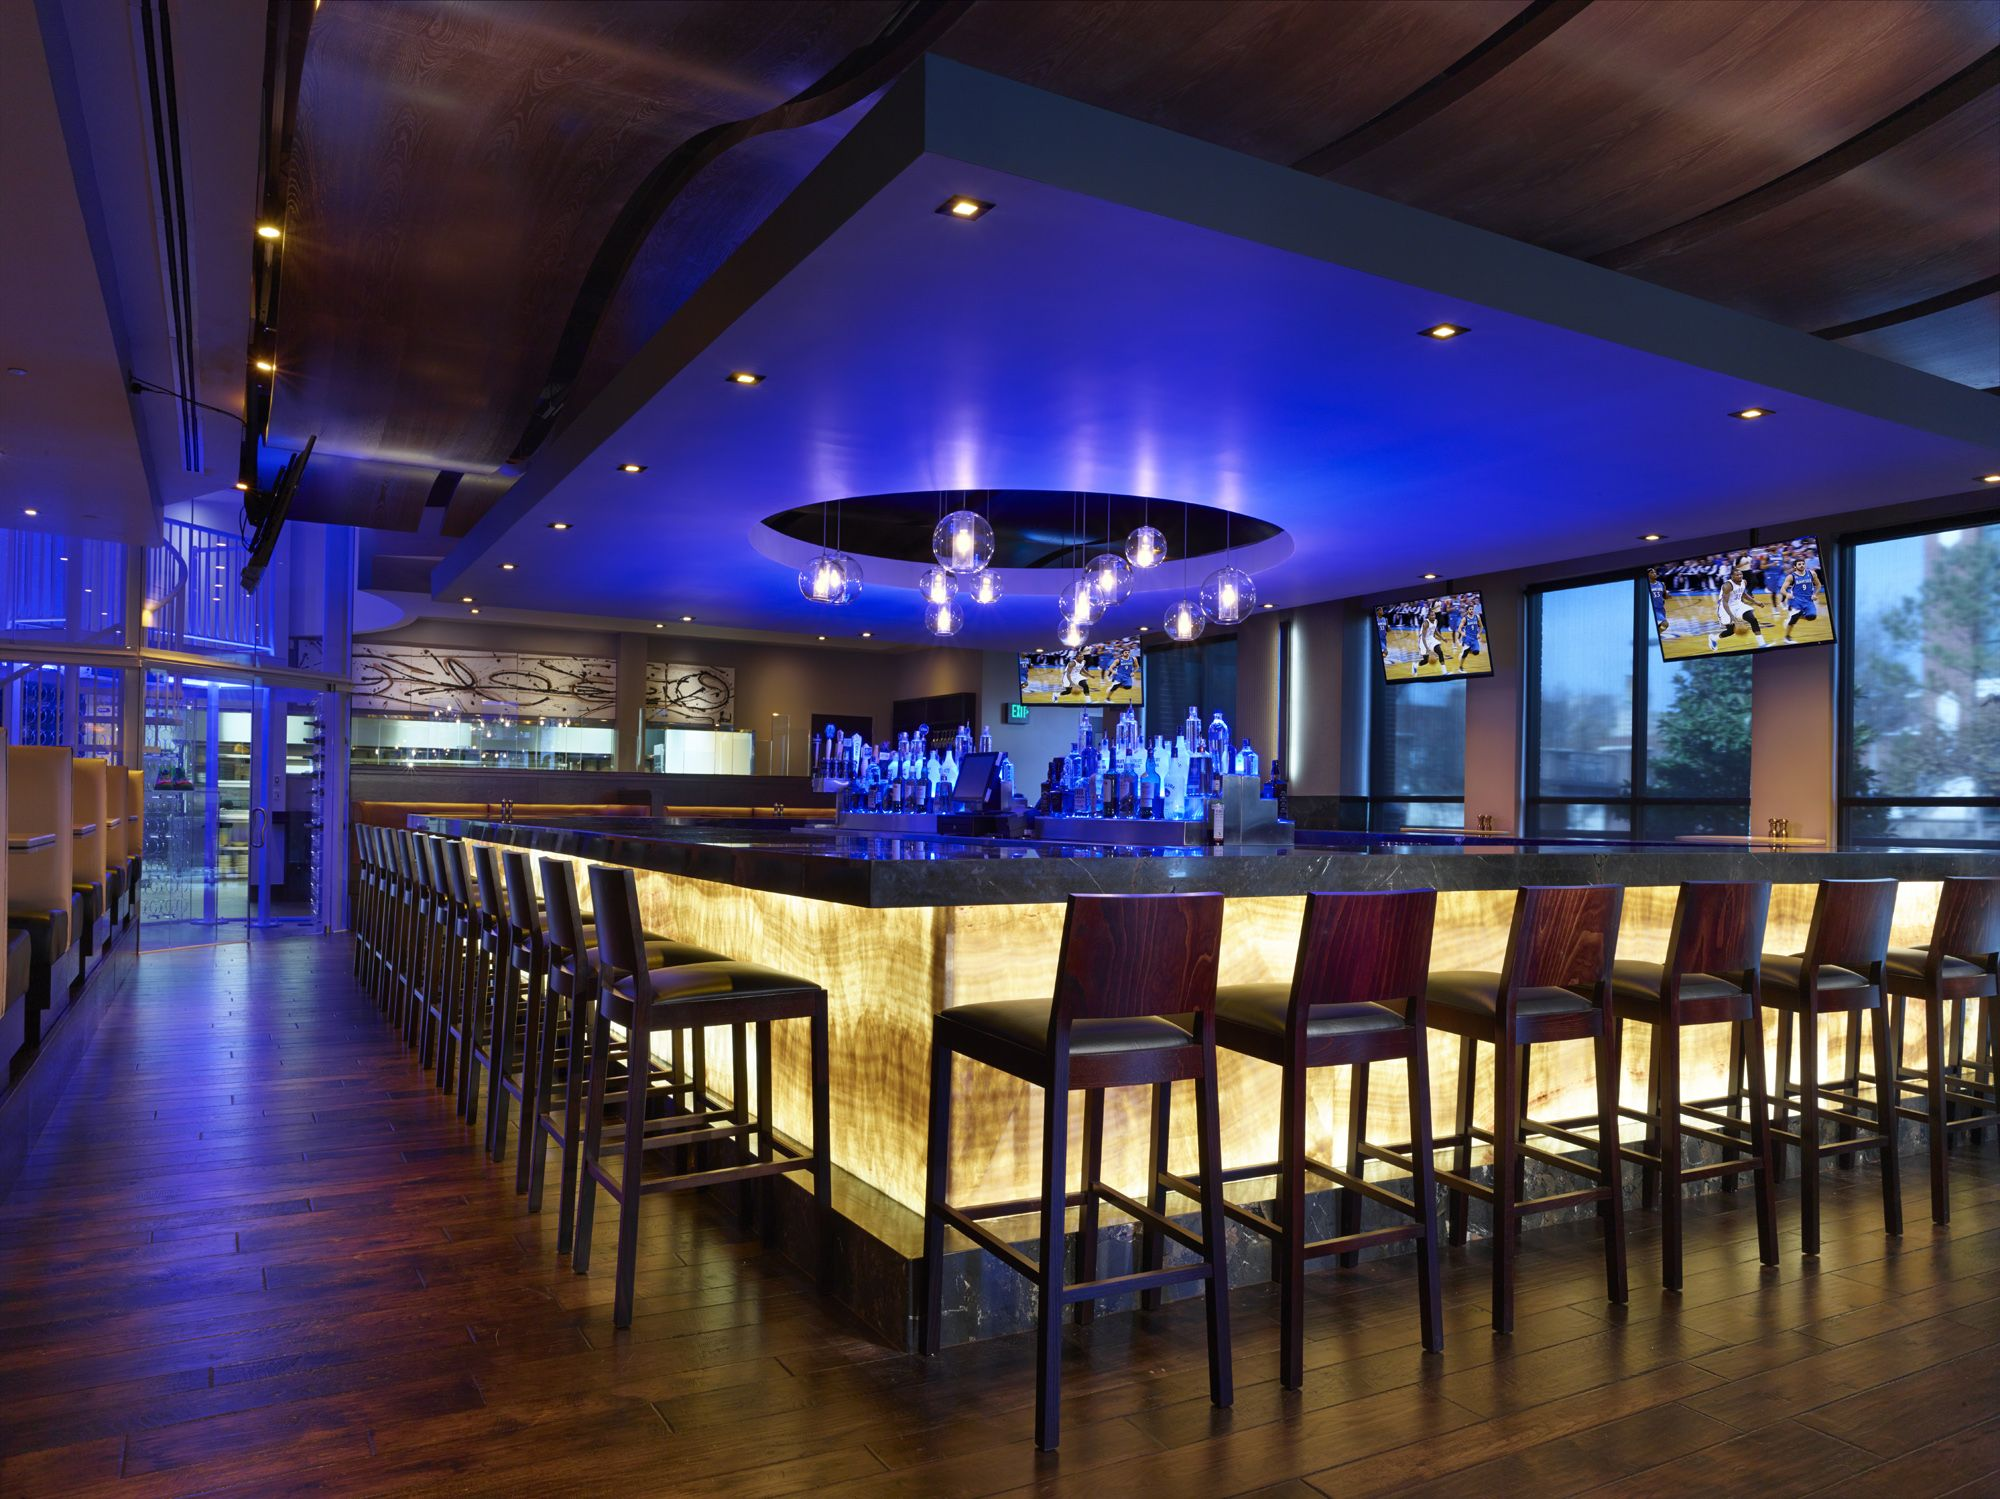 Used Kitchen Cabinets Okc The Bar Area At Kevin Durant 39s Southern Cuisine Restaurant